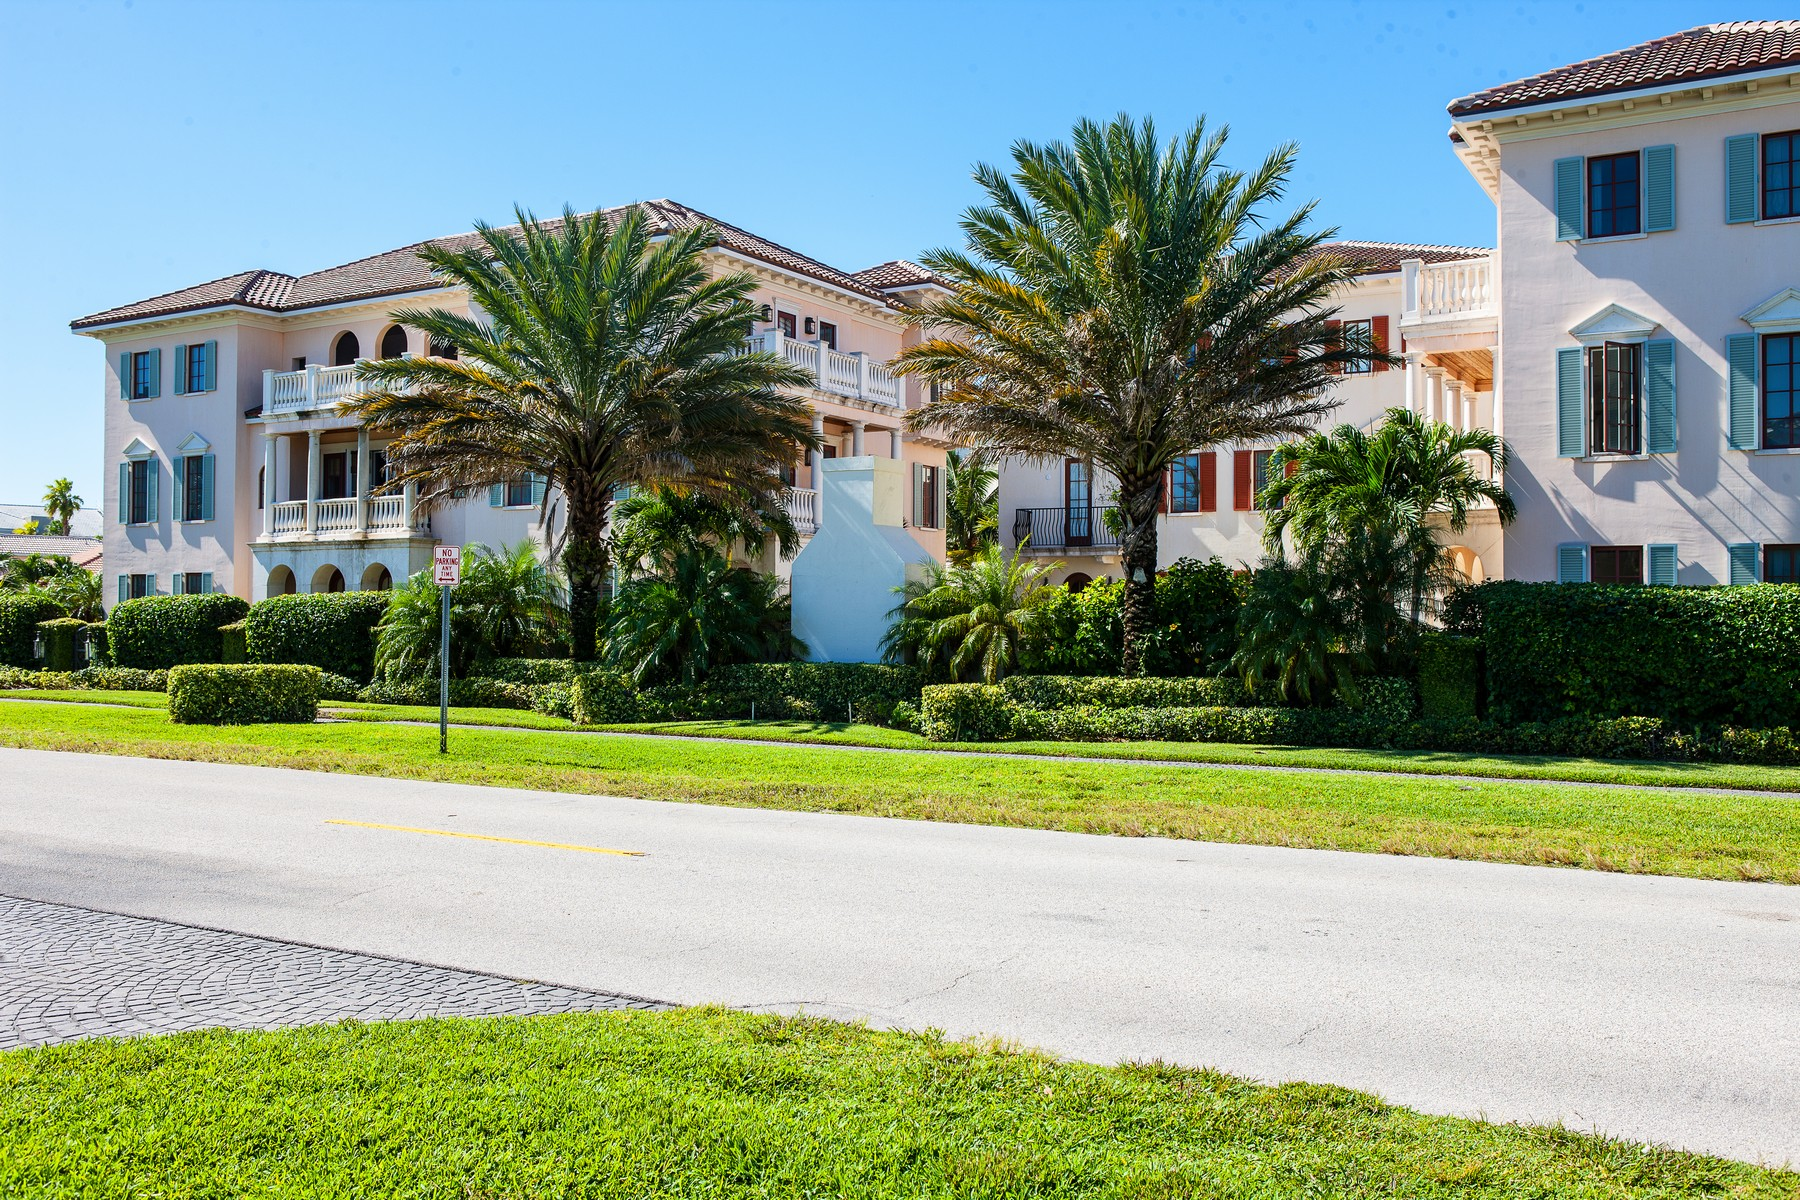 Townhouse for Sale at Elegant Italian Villa by Beach 1515 Ocean Drive #9, Vero Beach, Florida, 32963 United States